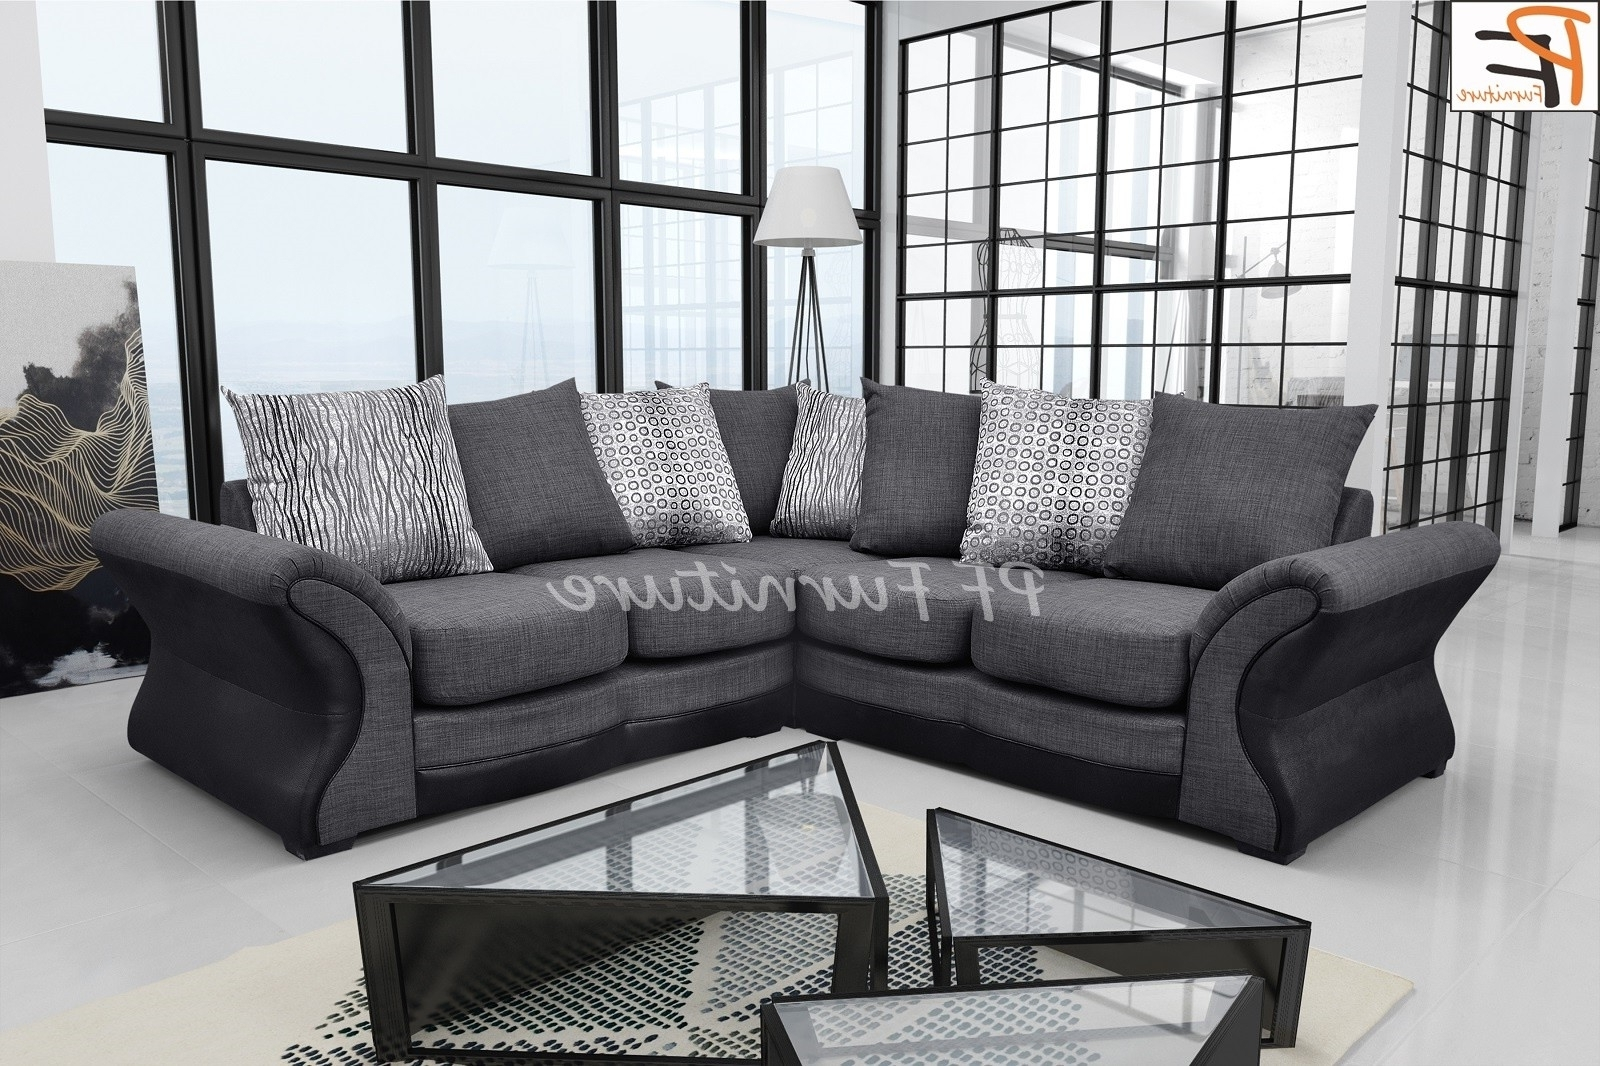 Fabric Corner Sofas Throughout Latest New Candem Fabric Corner Sofa Black/grey – Corner Sofas (View 8 of 20)